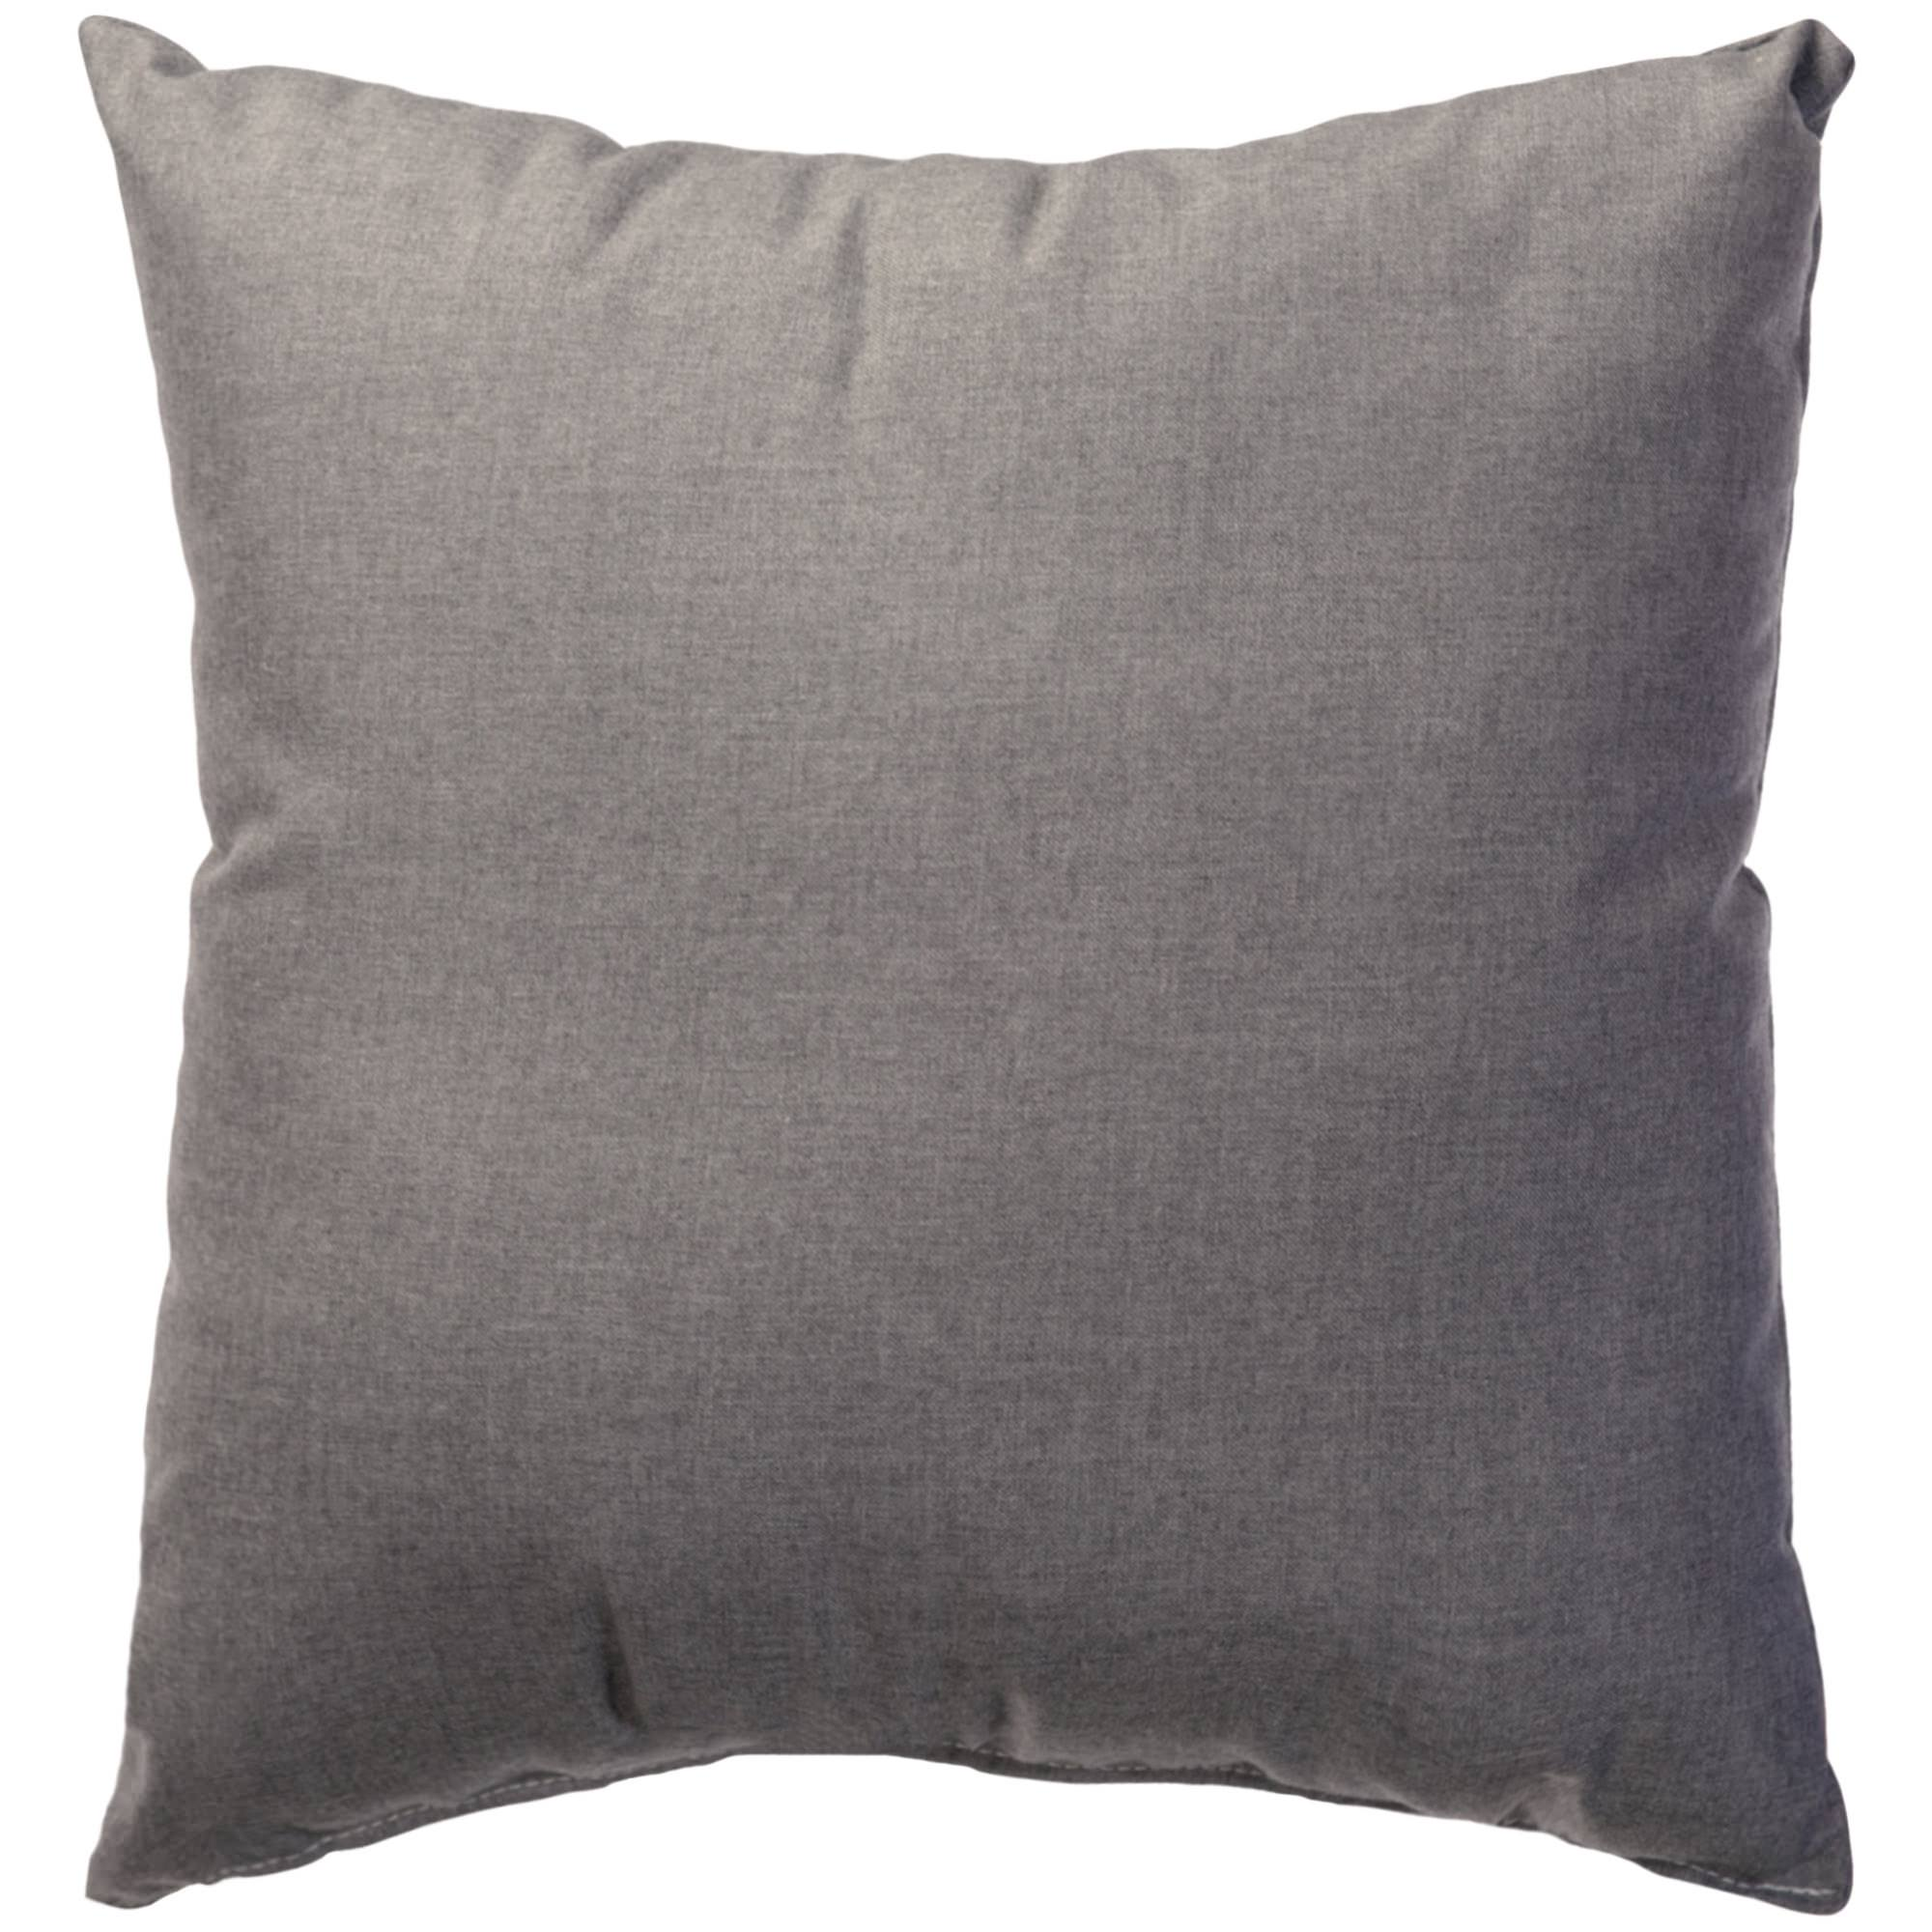 Cast Slate Sunbrella Outdoor Throw Pillow